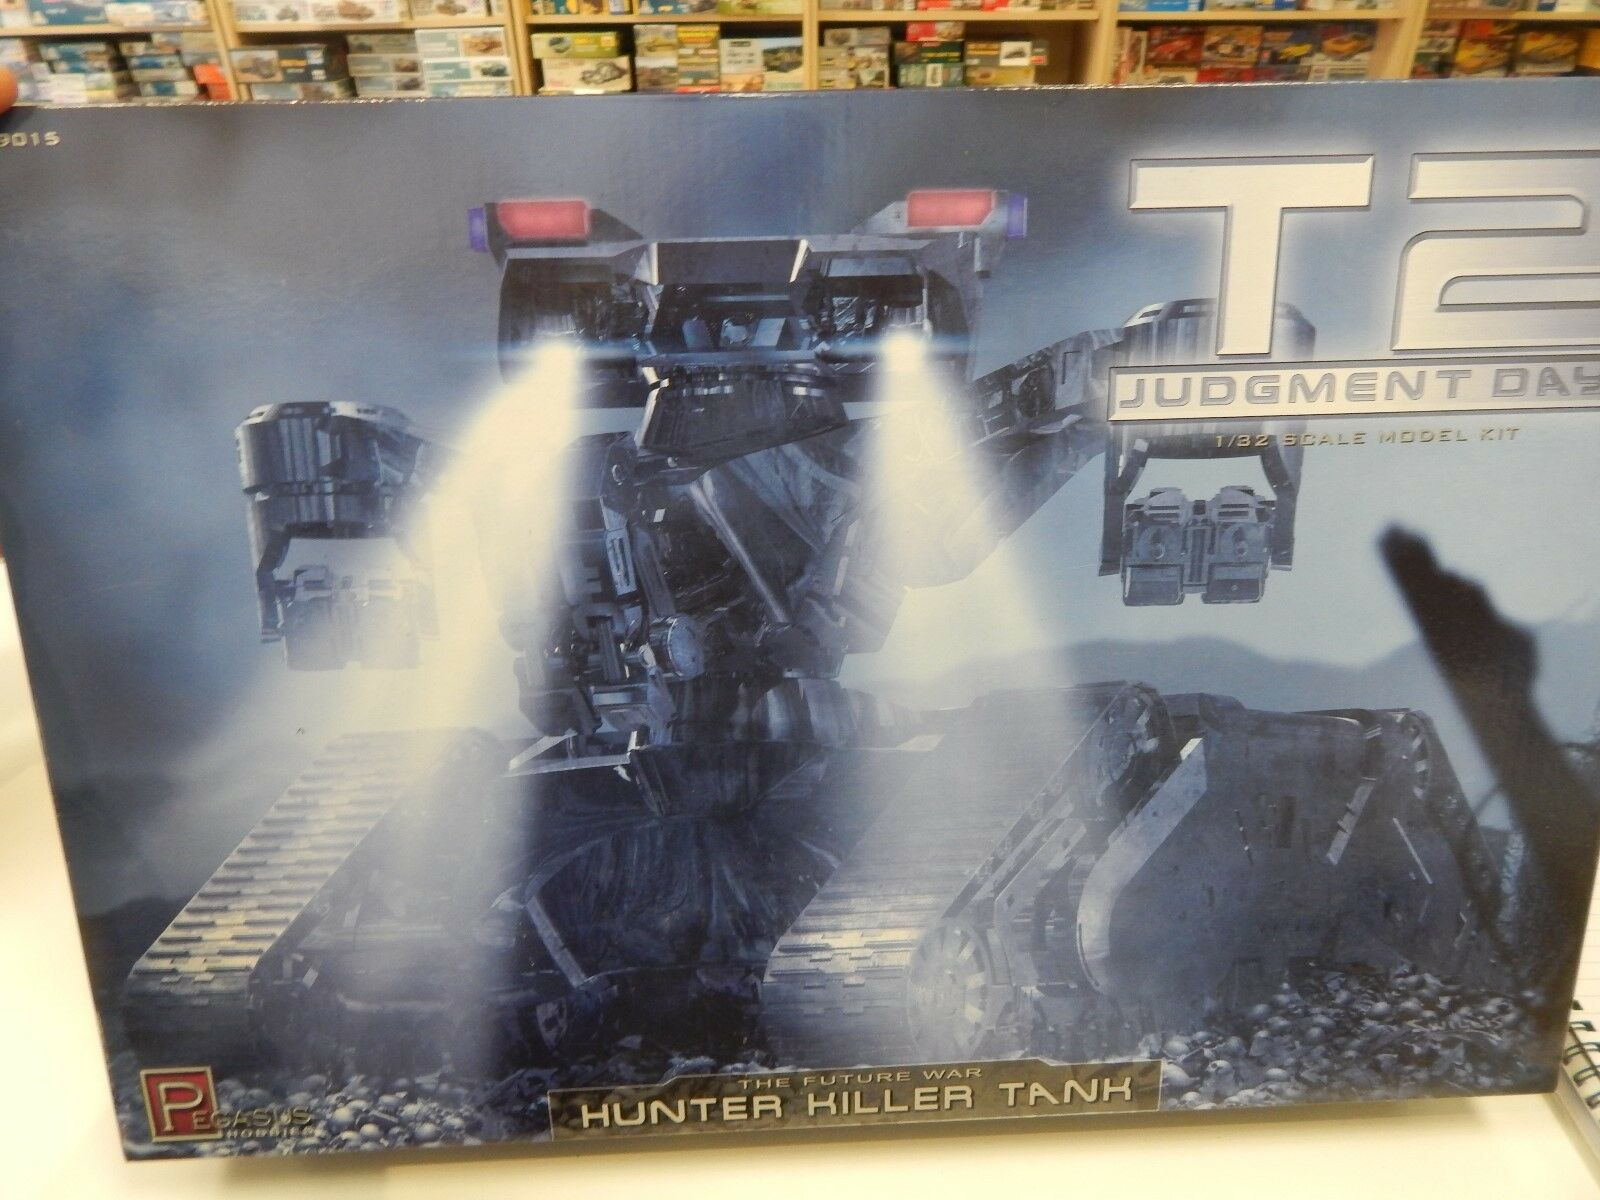 T2 Judgement Day  1 32 scale model kit